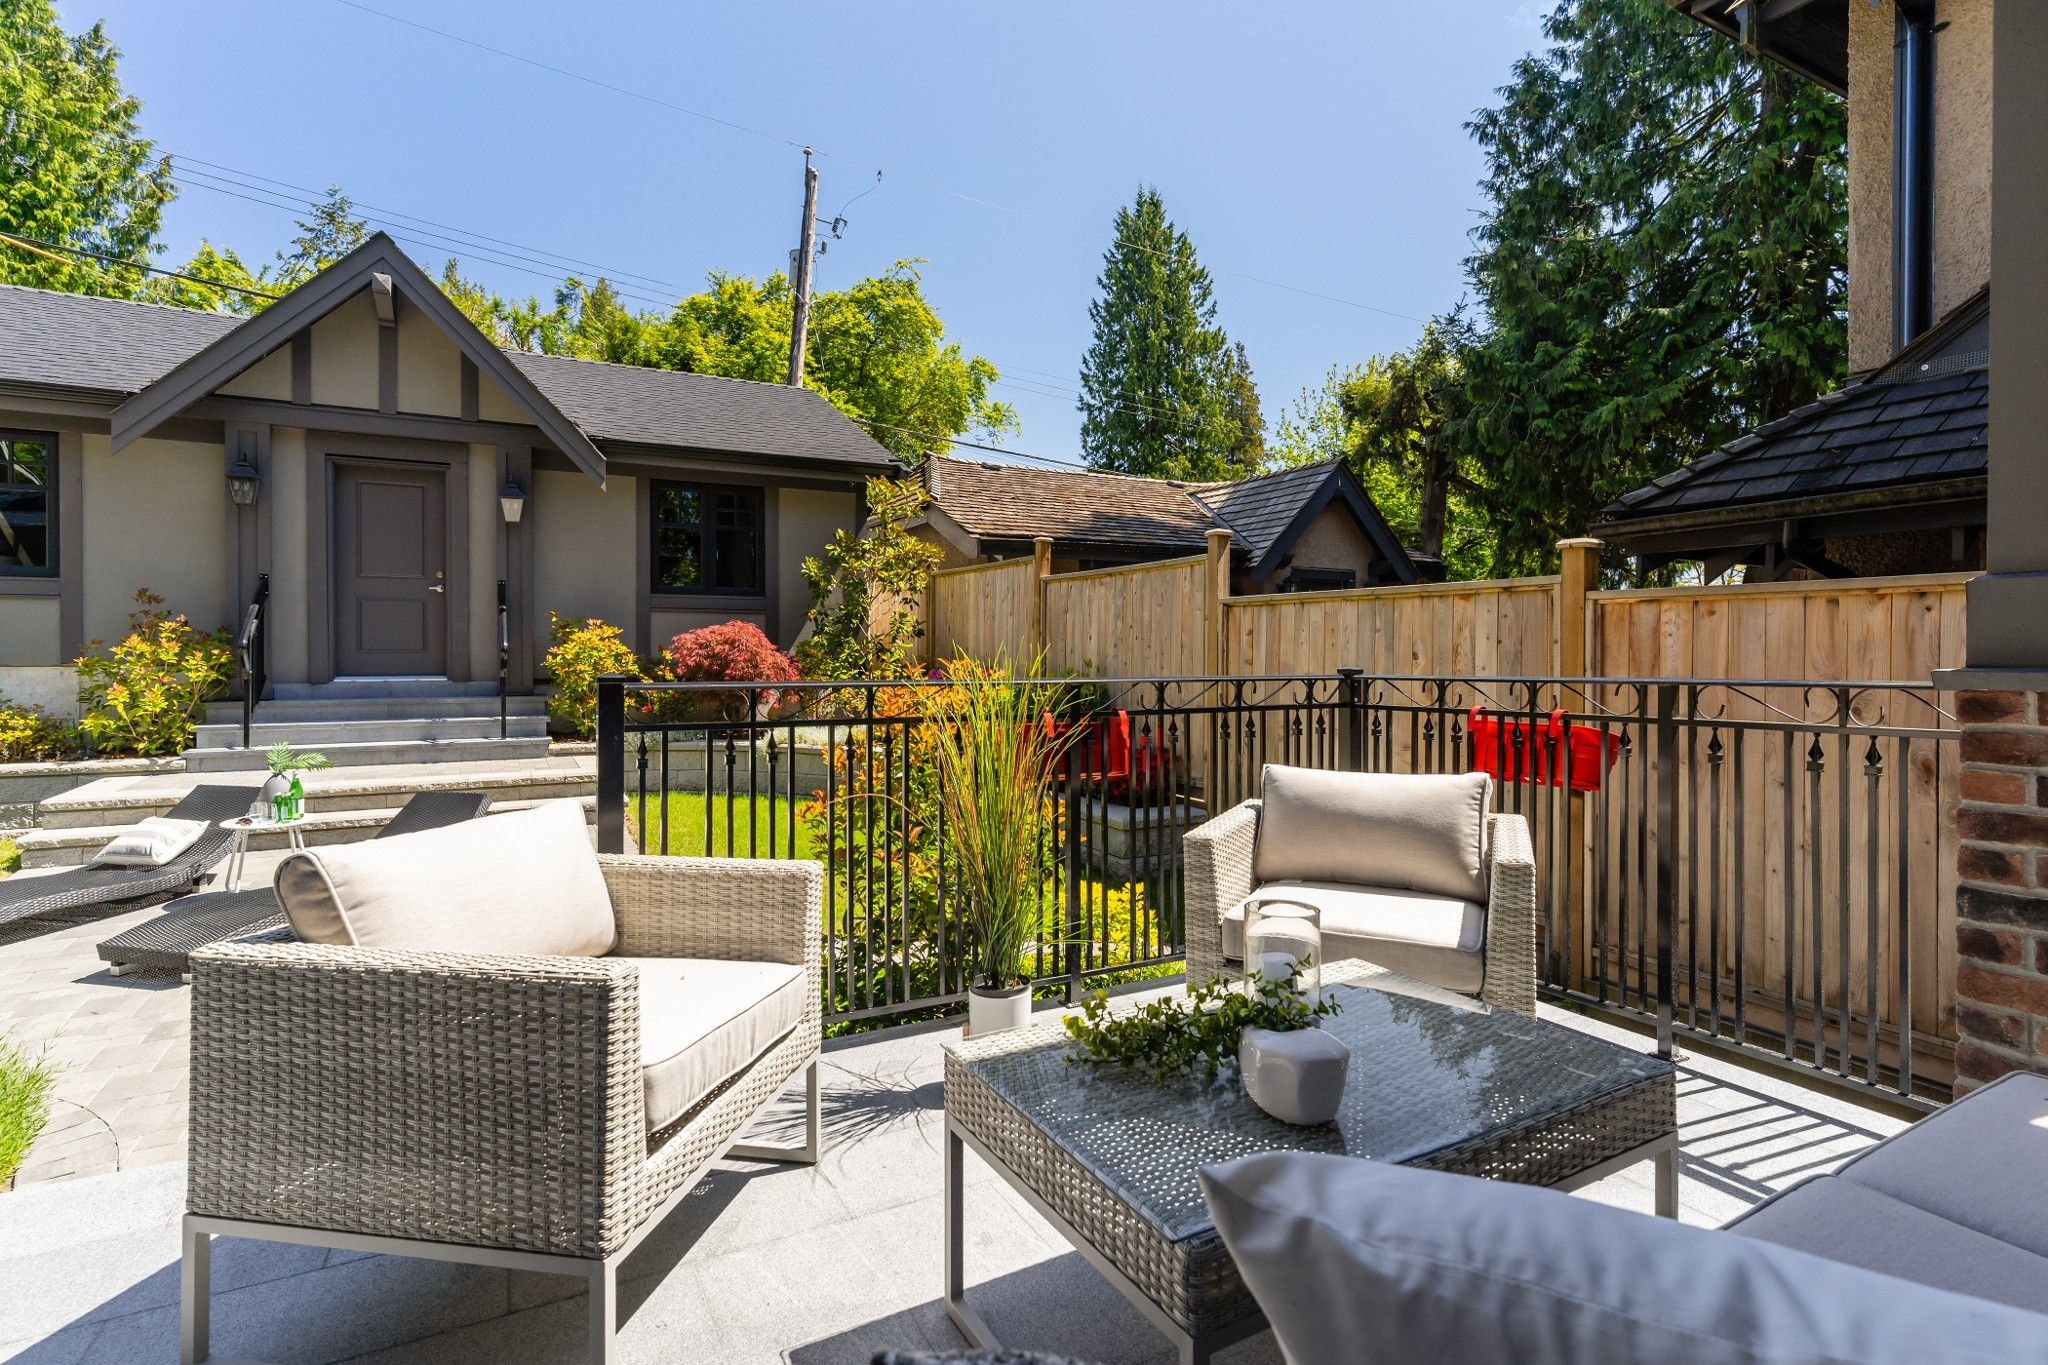 Photo 41: Photos: 5756 ALMA STREET in VANCOUVER: Southlands House for sale (Vancouver West)  : MLS®# R2588229